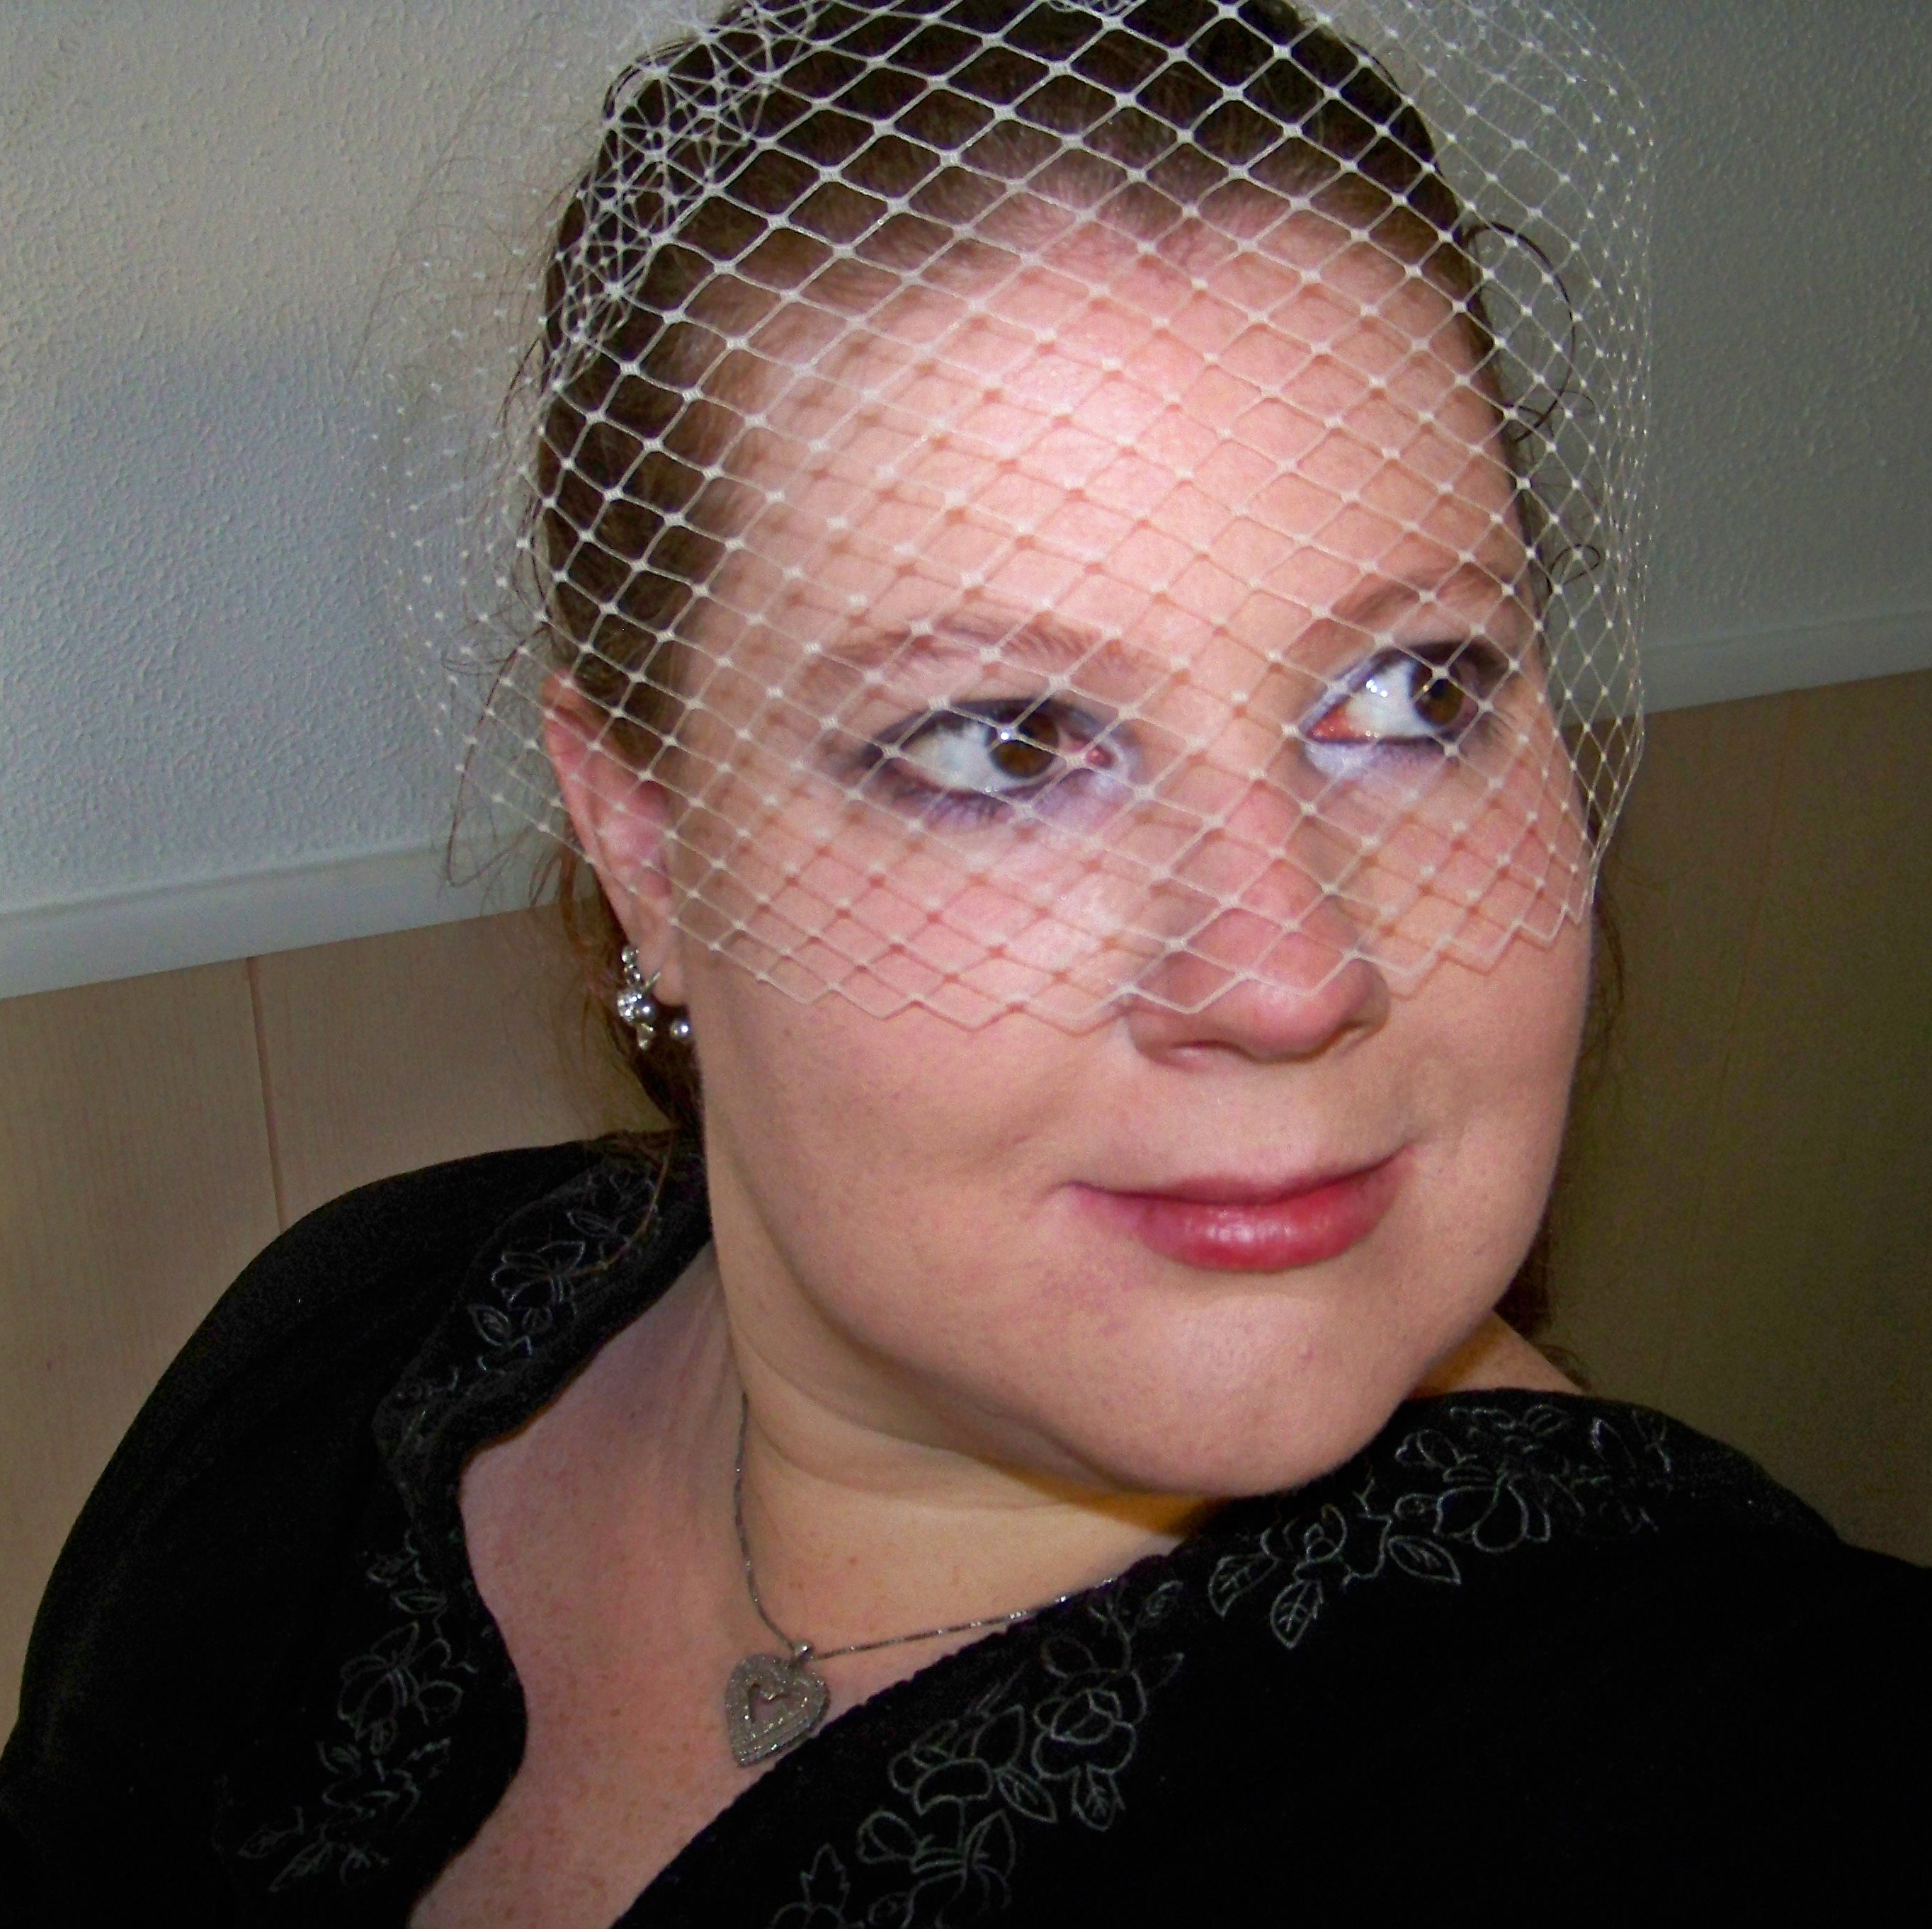 Beauty, Veils, Fashion, Veil, Wedding, Hair, Bridal, Birdcage, Headpiece, French, Netting, Russian, Donnaella wedding accessories